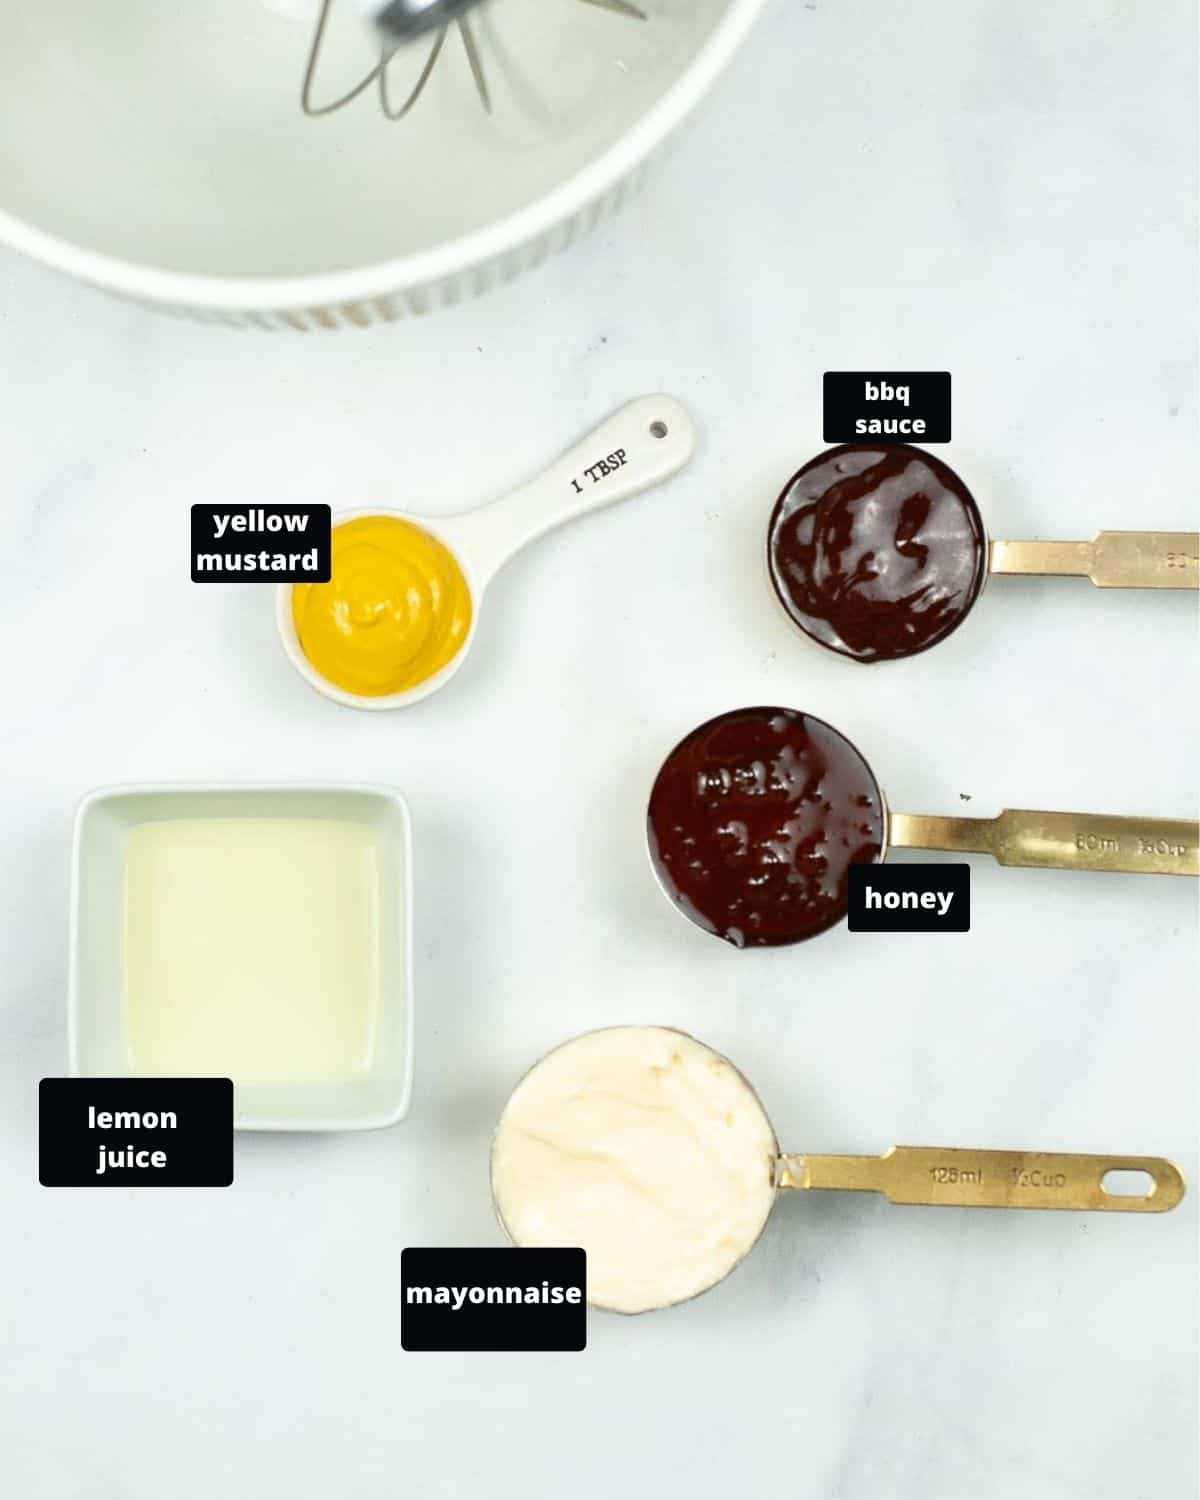 Honey, bbq sauce, yellow mustard, lemon juice, and mayonnaise in measuring spoons.